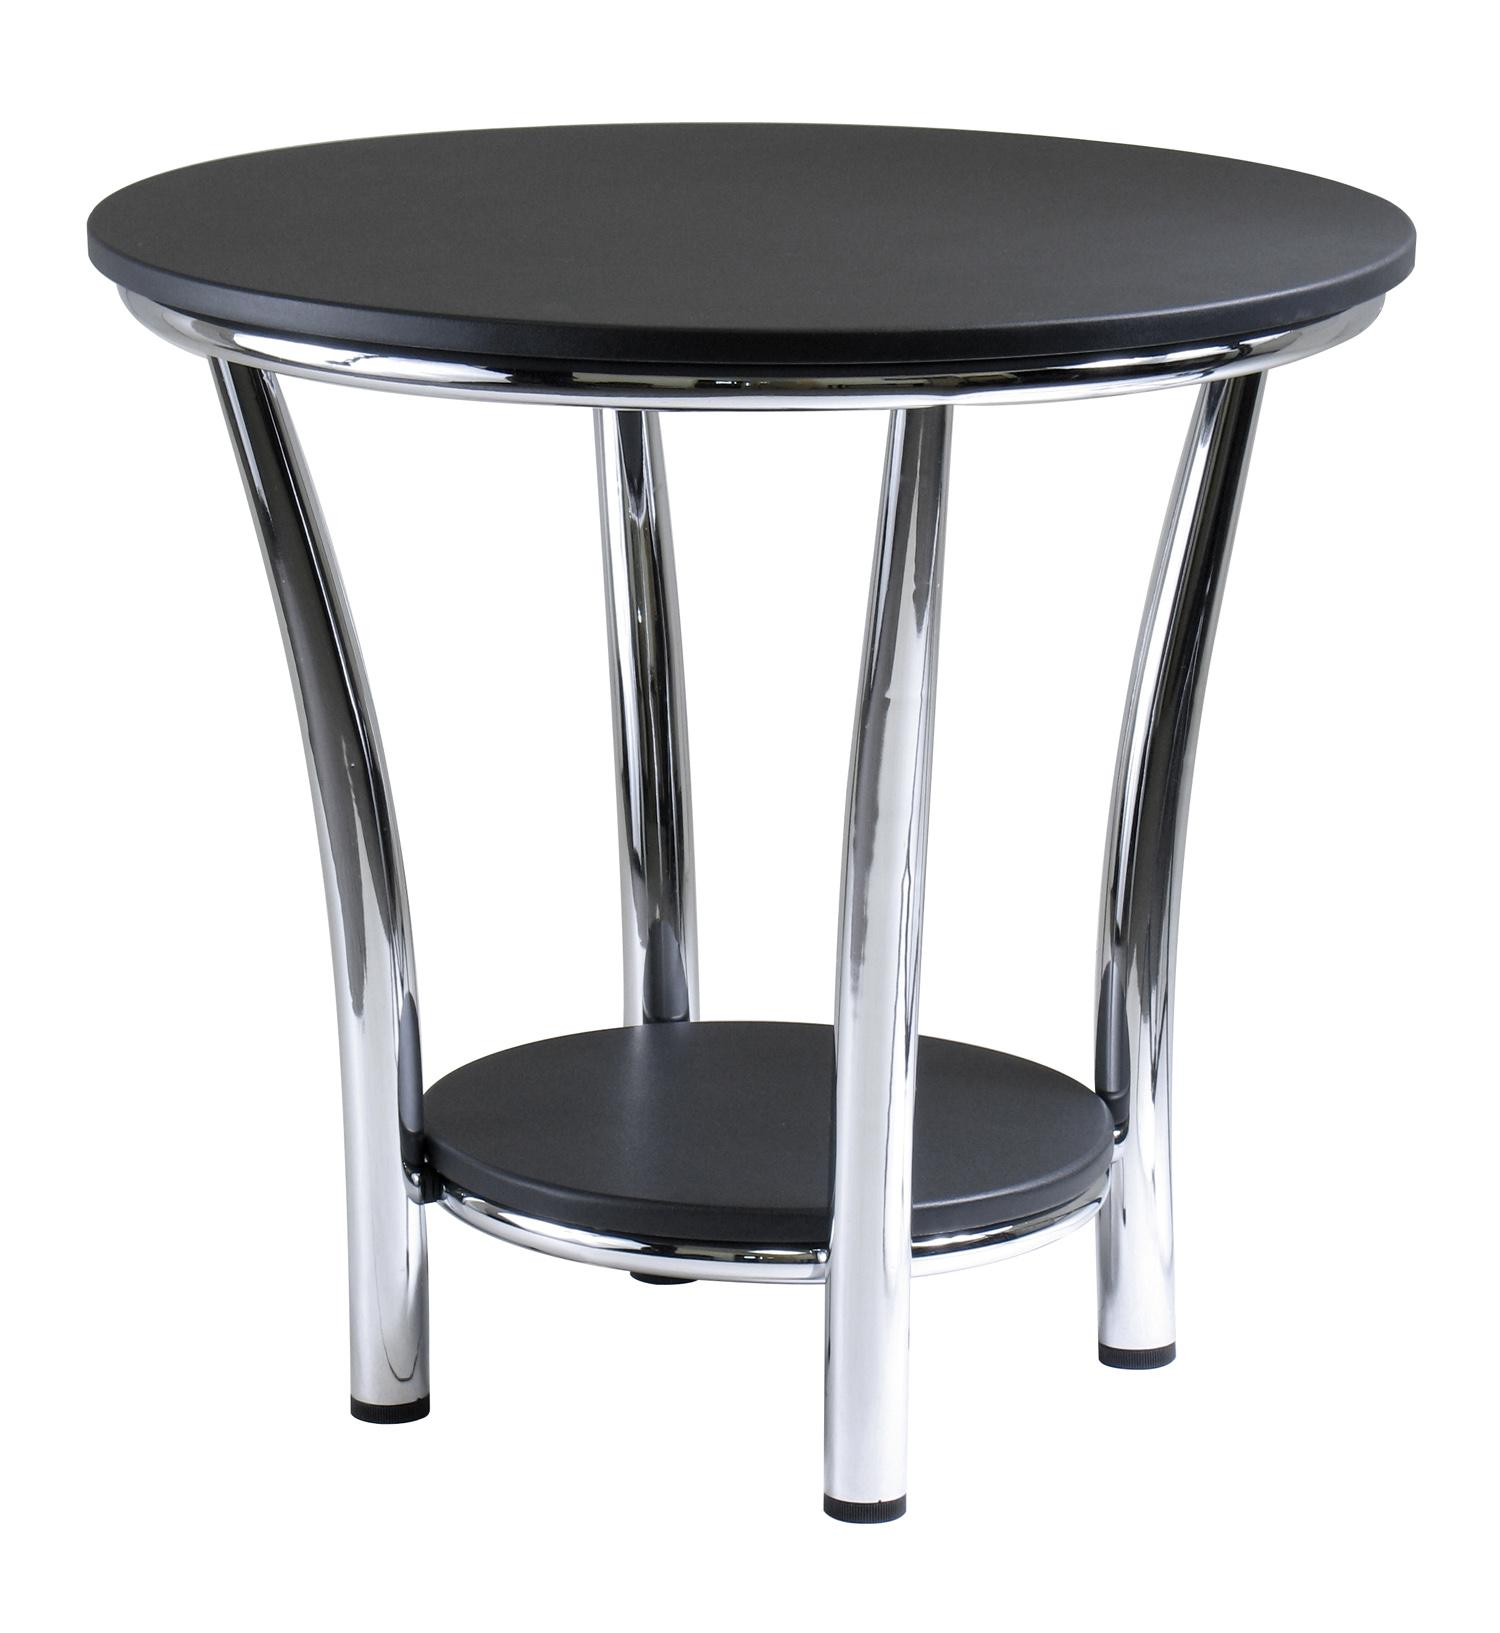 winsome wood round end table black top metal legs accent modern contemporary coffee fine linens brown leather chair glass light shades outdoor furniture winnipeg teal bedroom sets